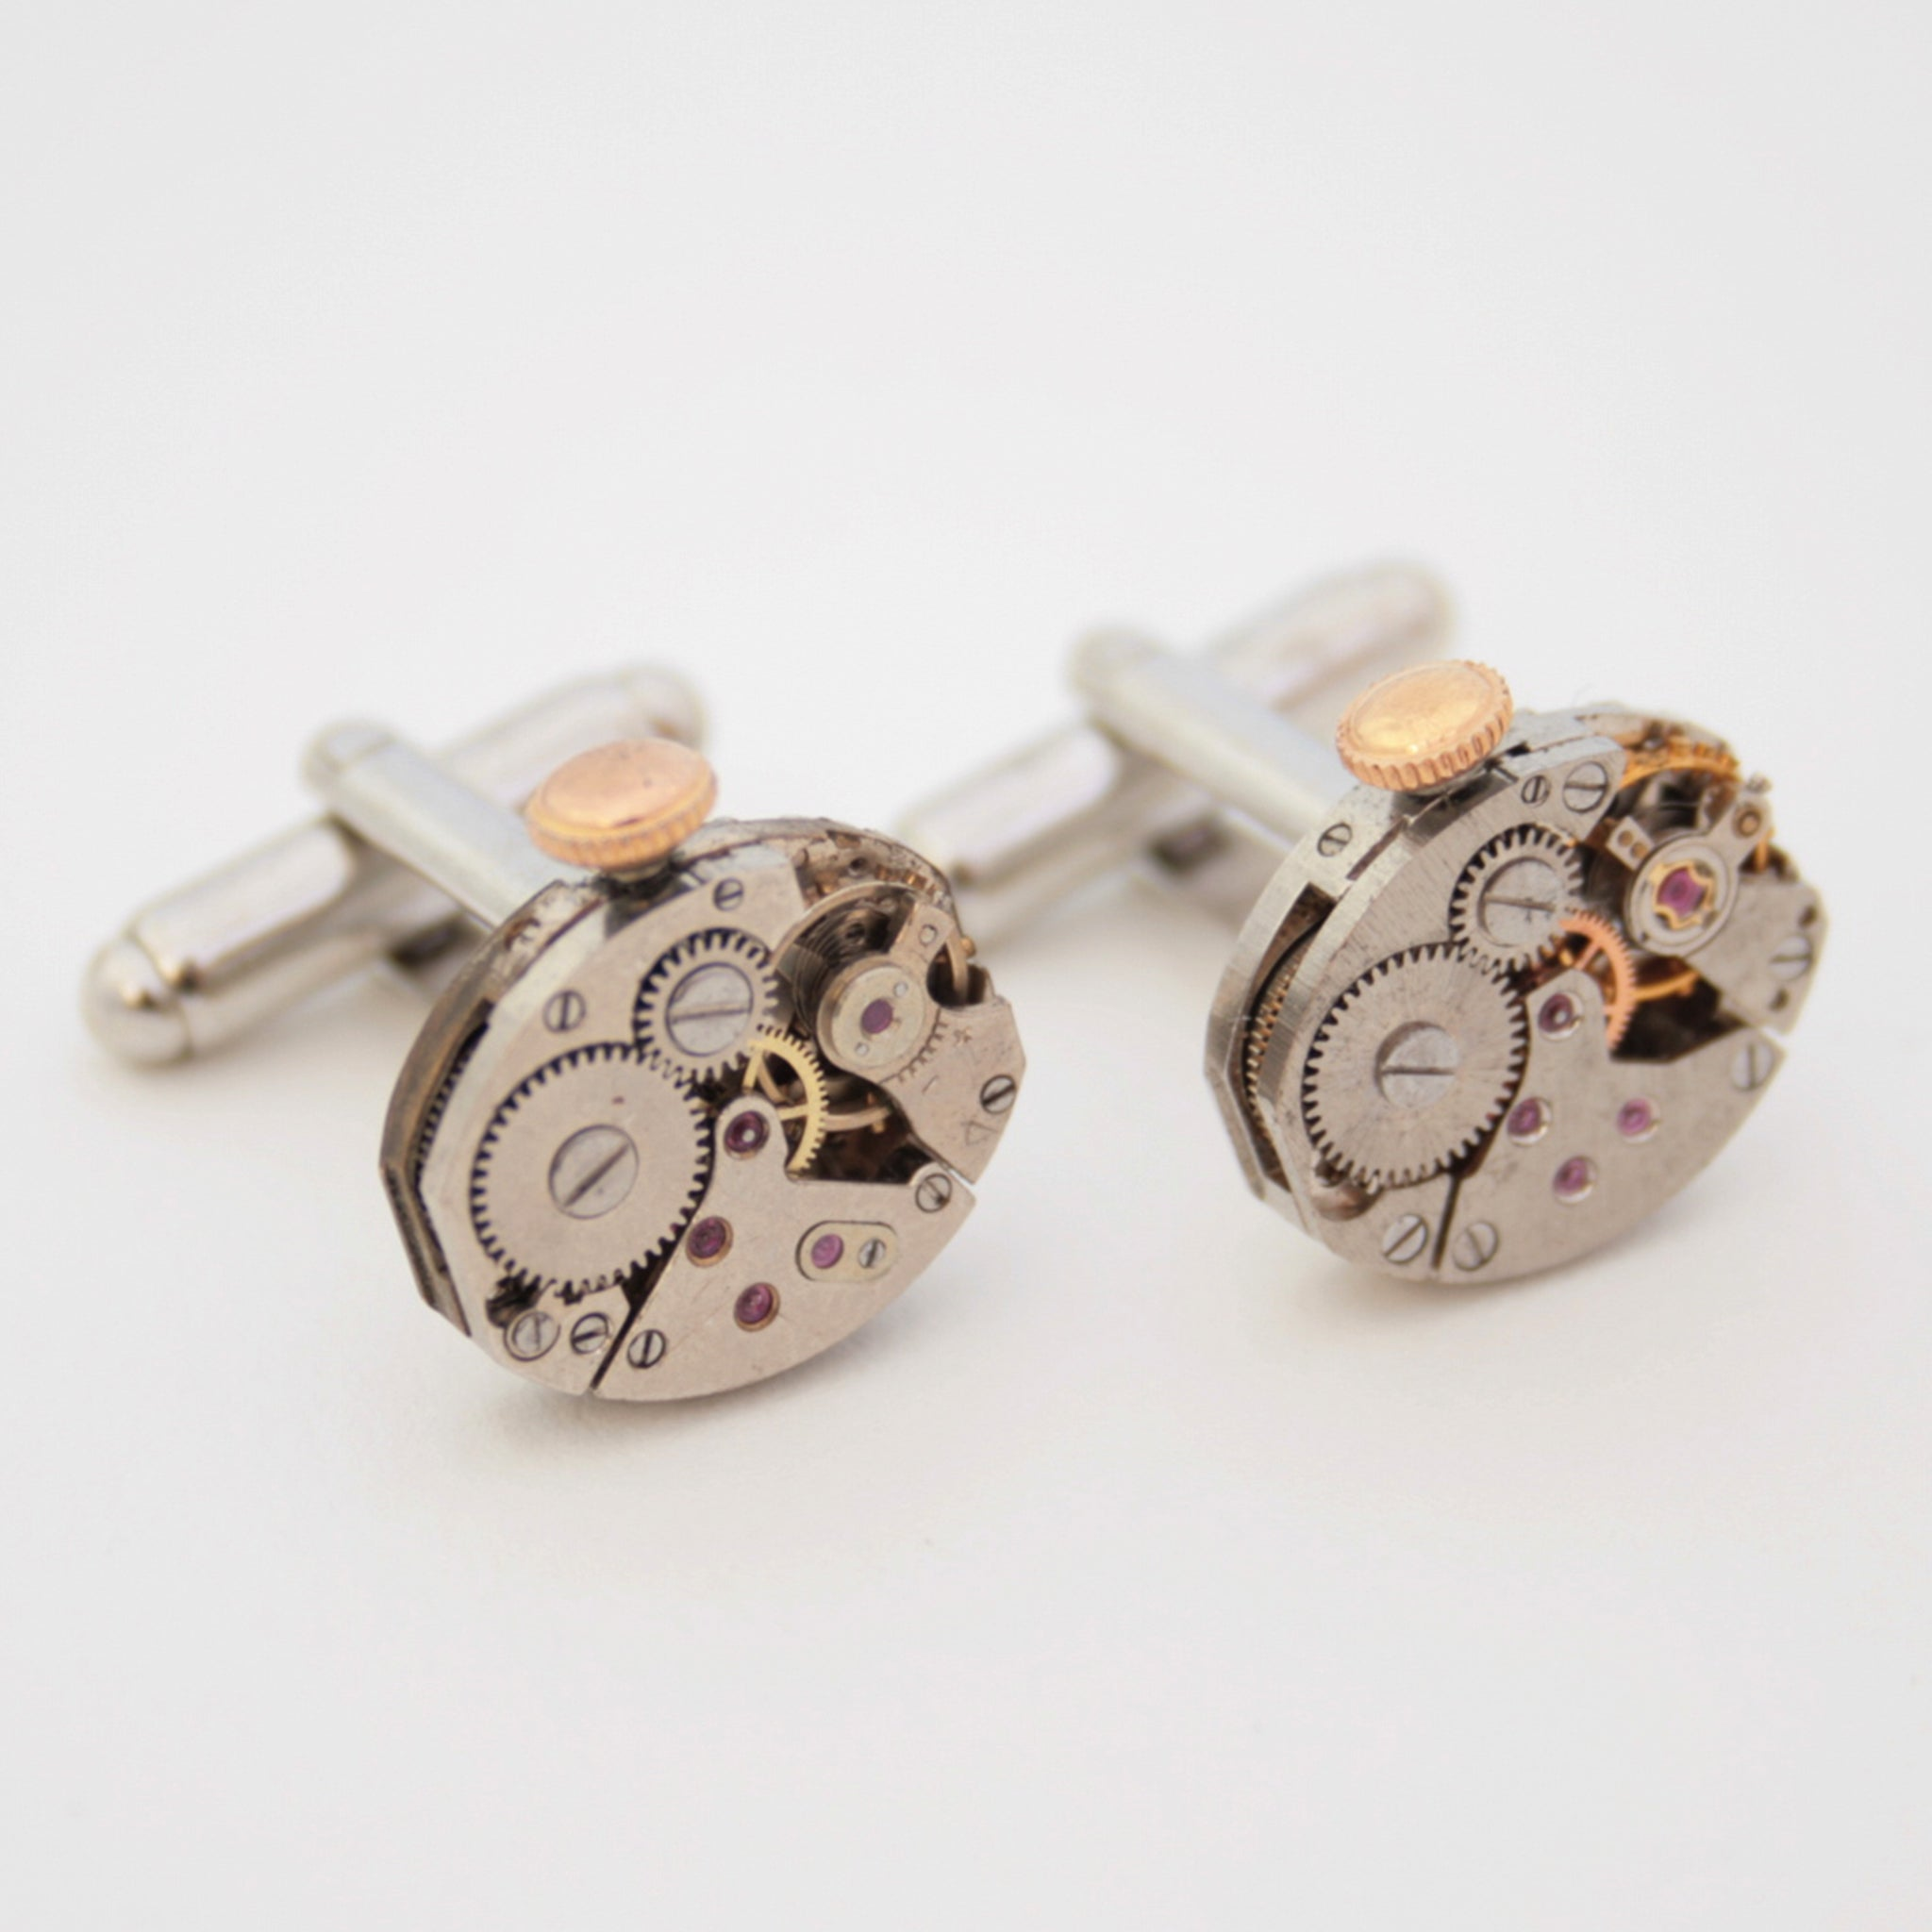 steampunk wedding cufflinks featuring antique watch movements with wind ups